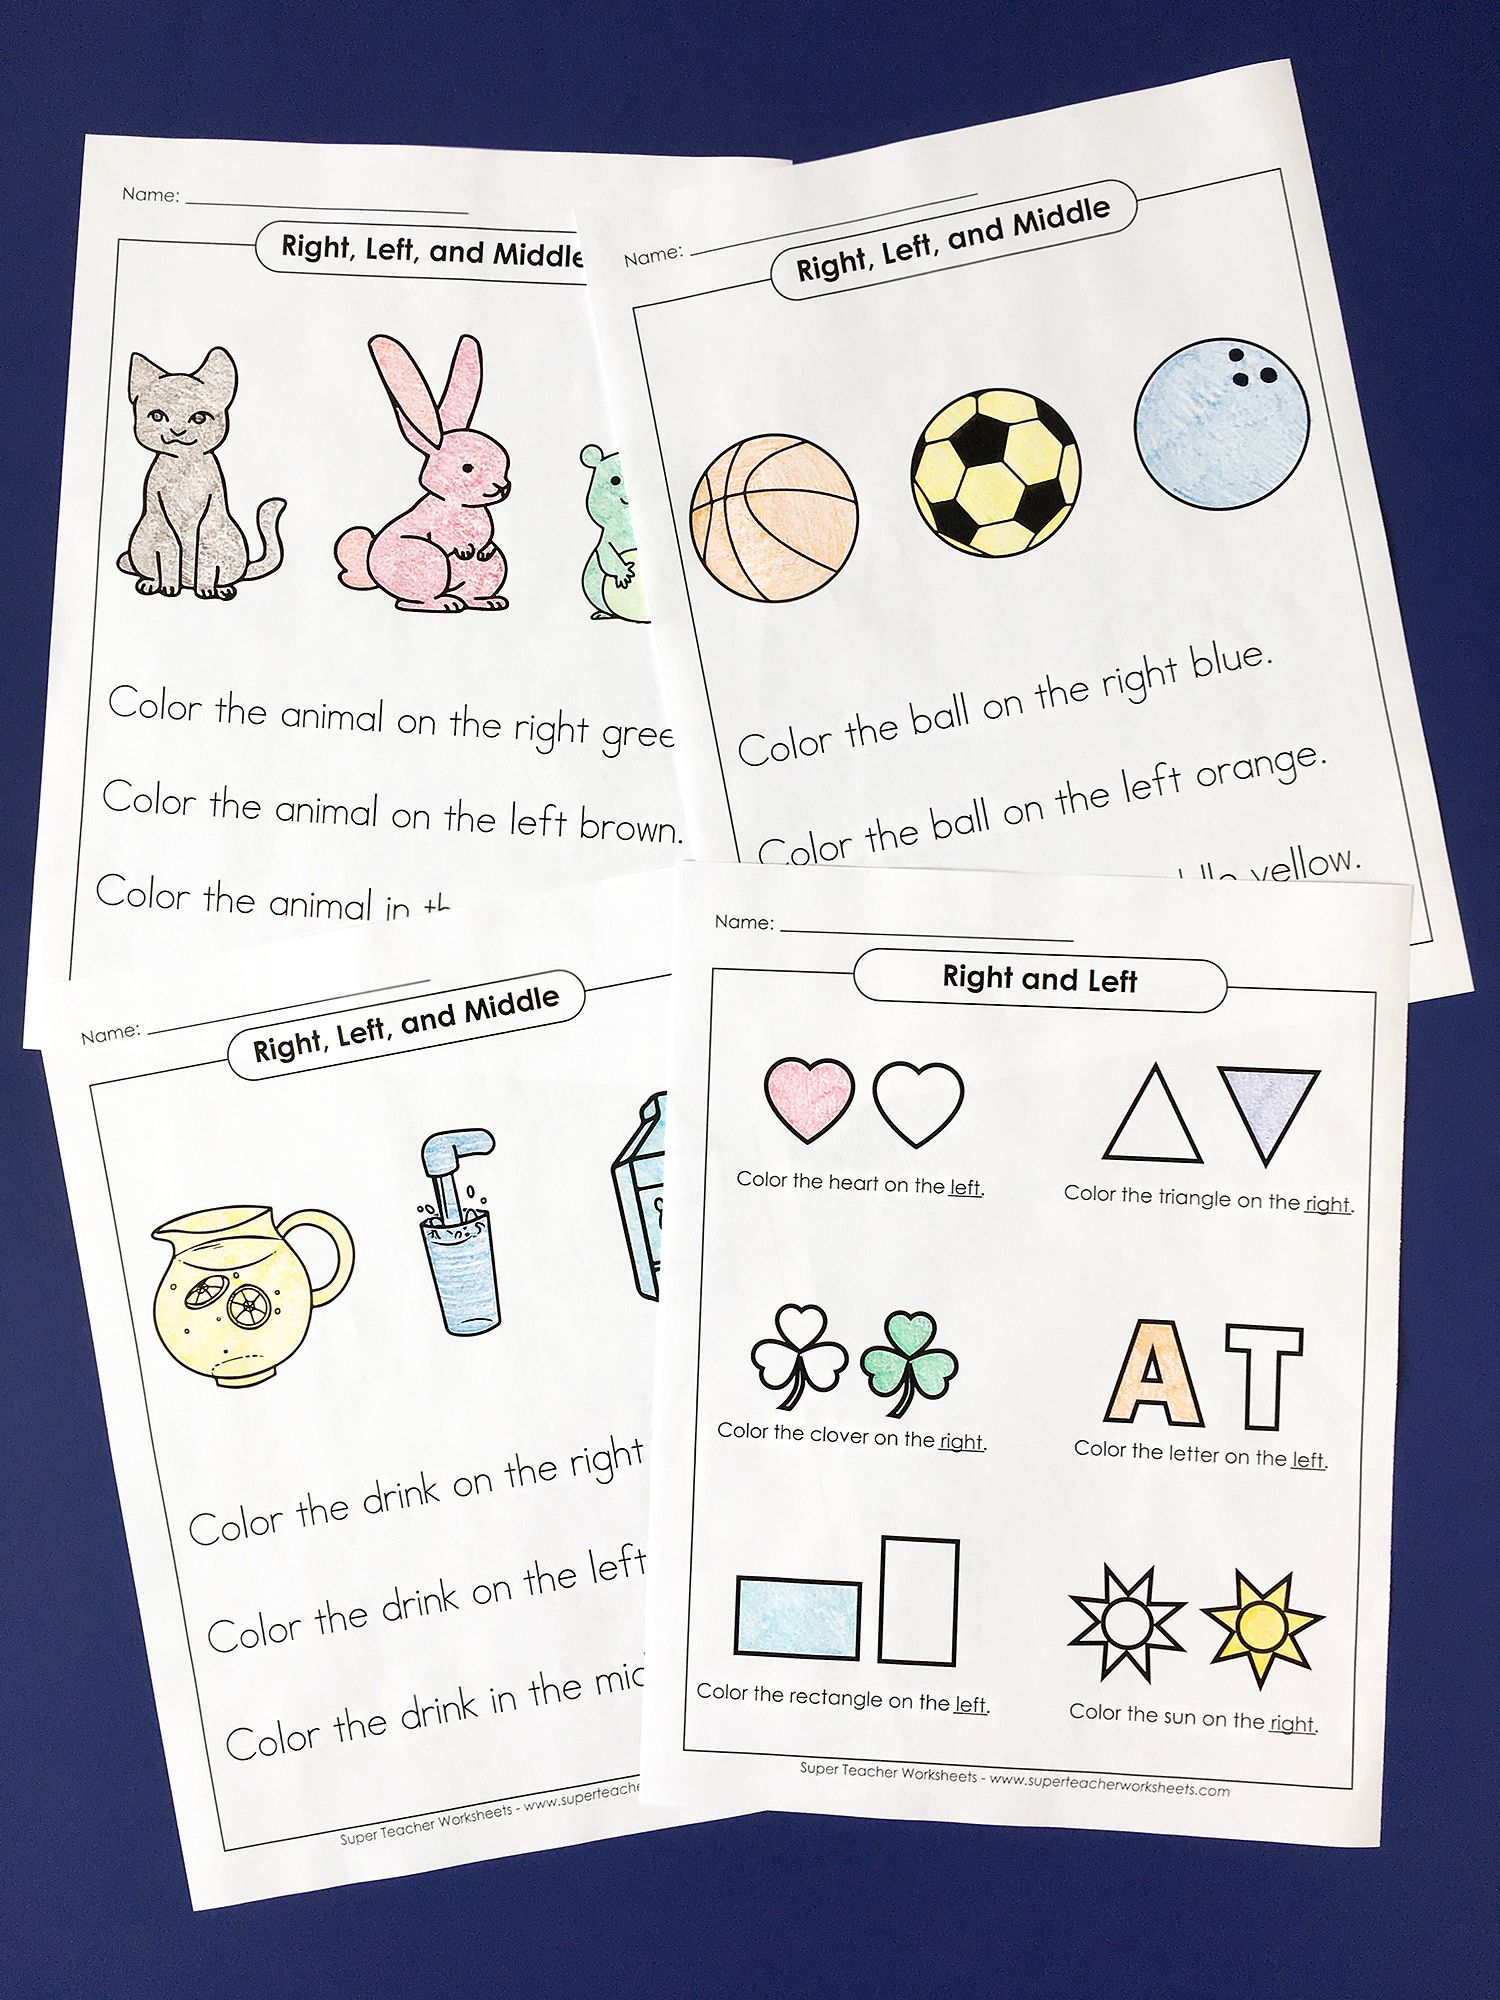 Did You Know Super Teacher Worksheets Has Activities For Preschool And Kindergarten Check Out